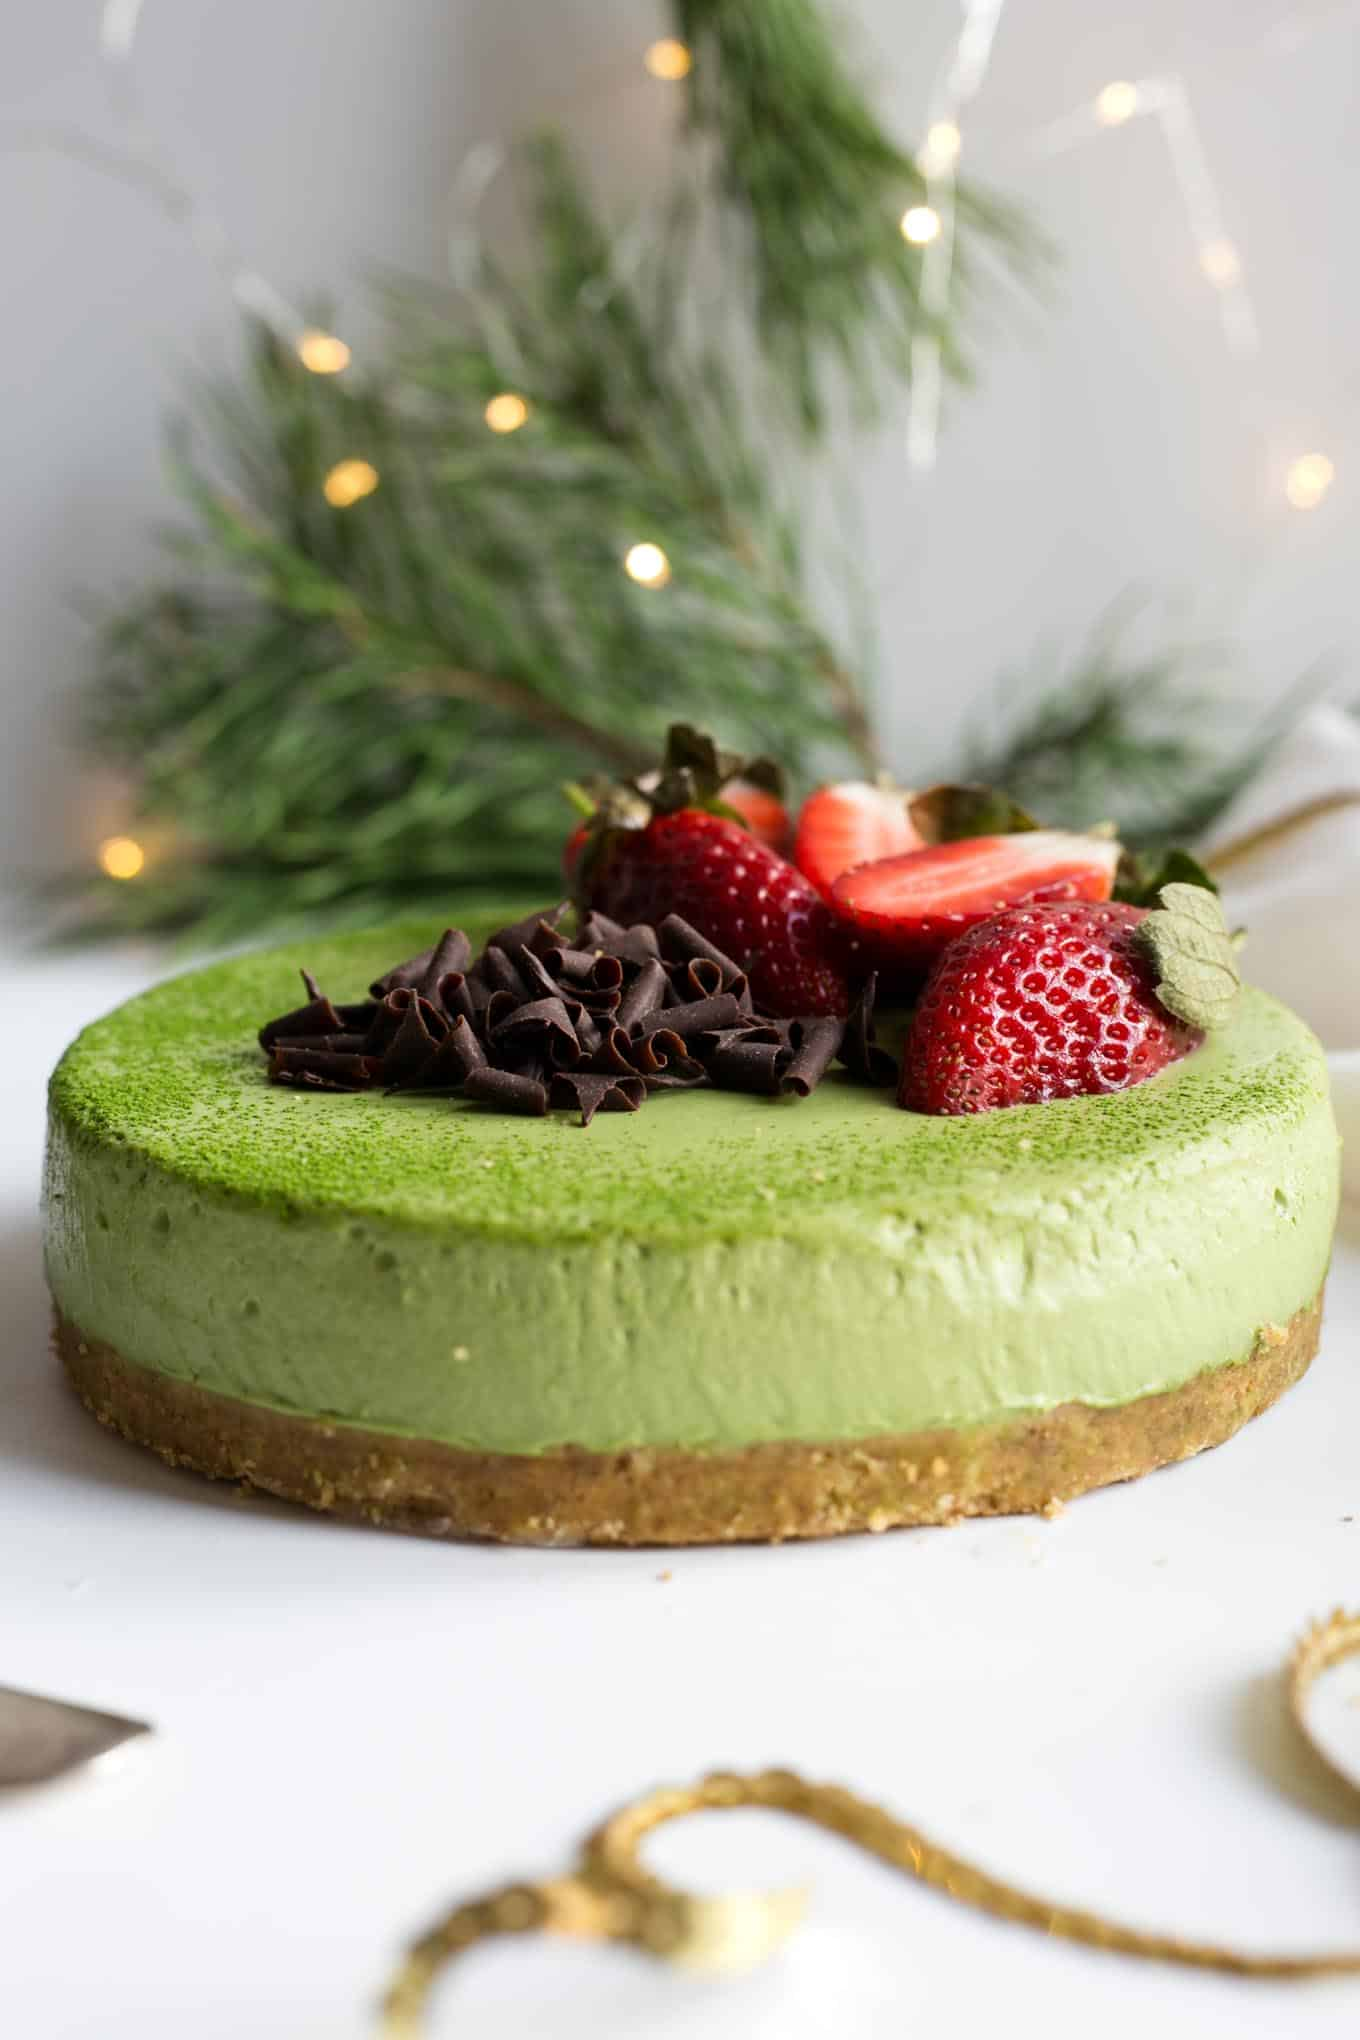 Matcha and ginger cheesecake, super creamy and soft cake made with green matcha tea! #vegan #cheesecake #matcha #dairyfree | via @annabanana.co